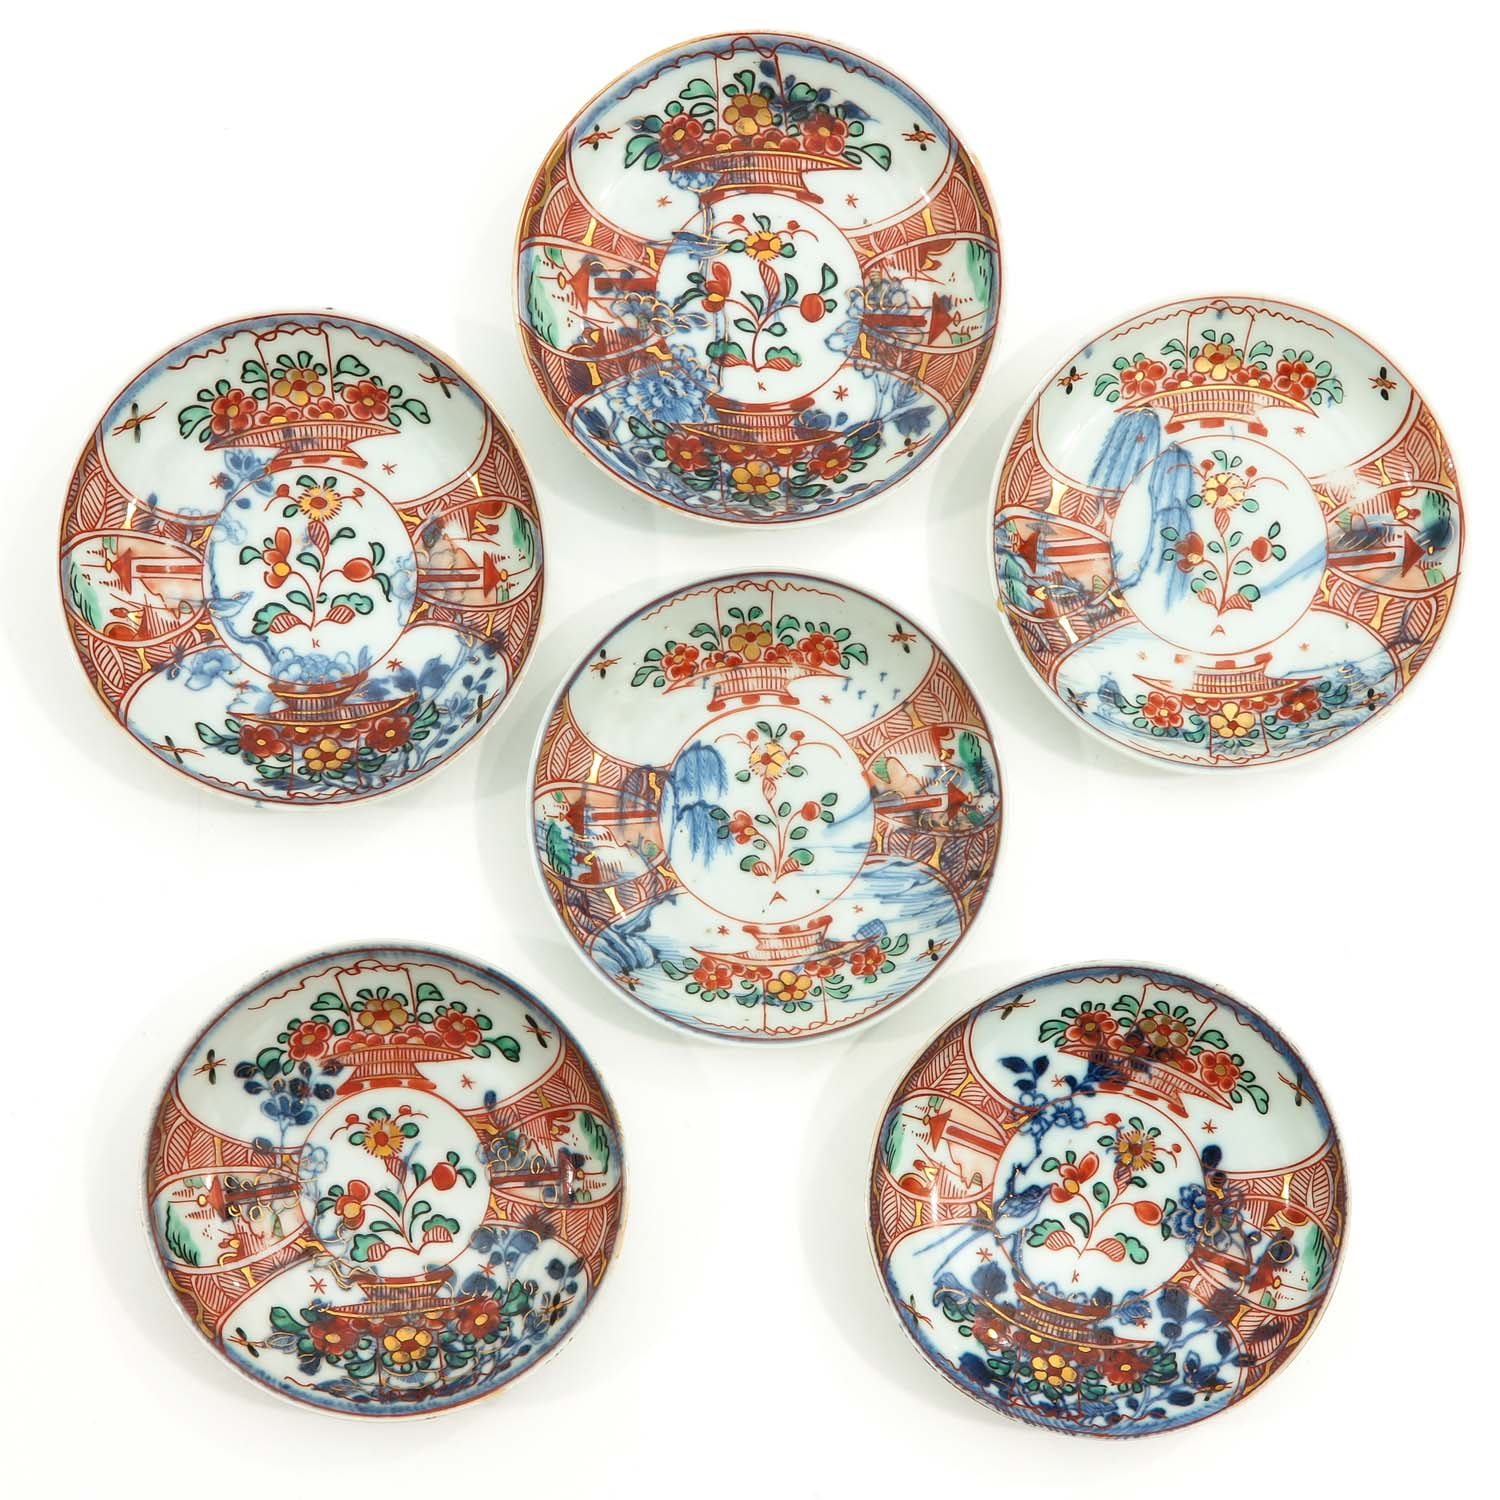 A Series of 6 Cups and Saucers - Image 7 of 10